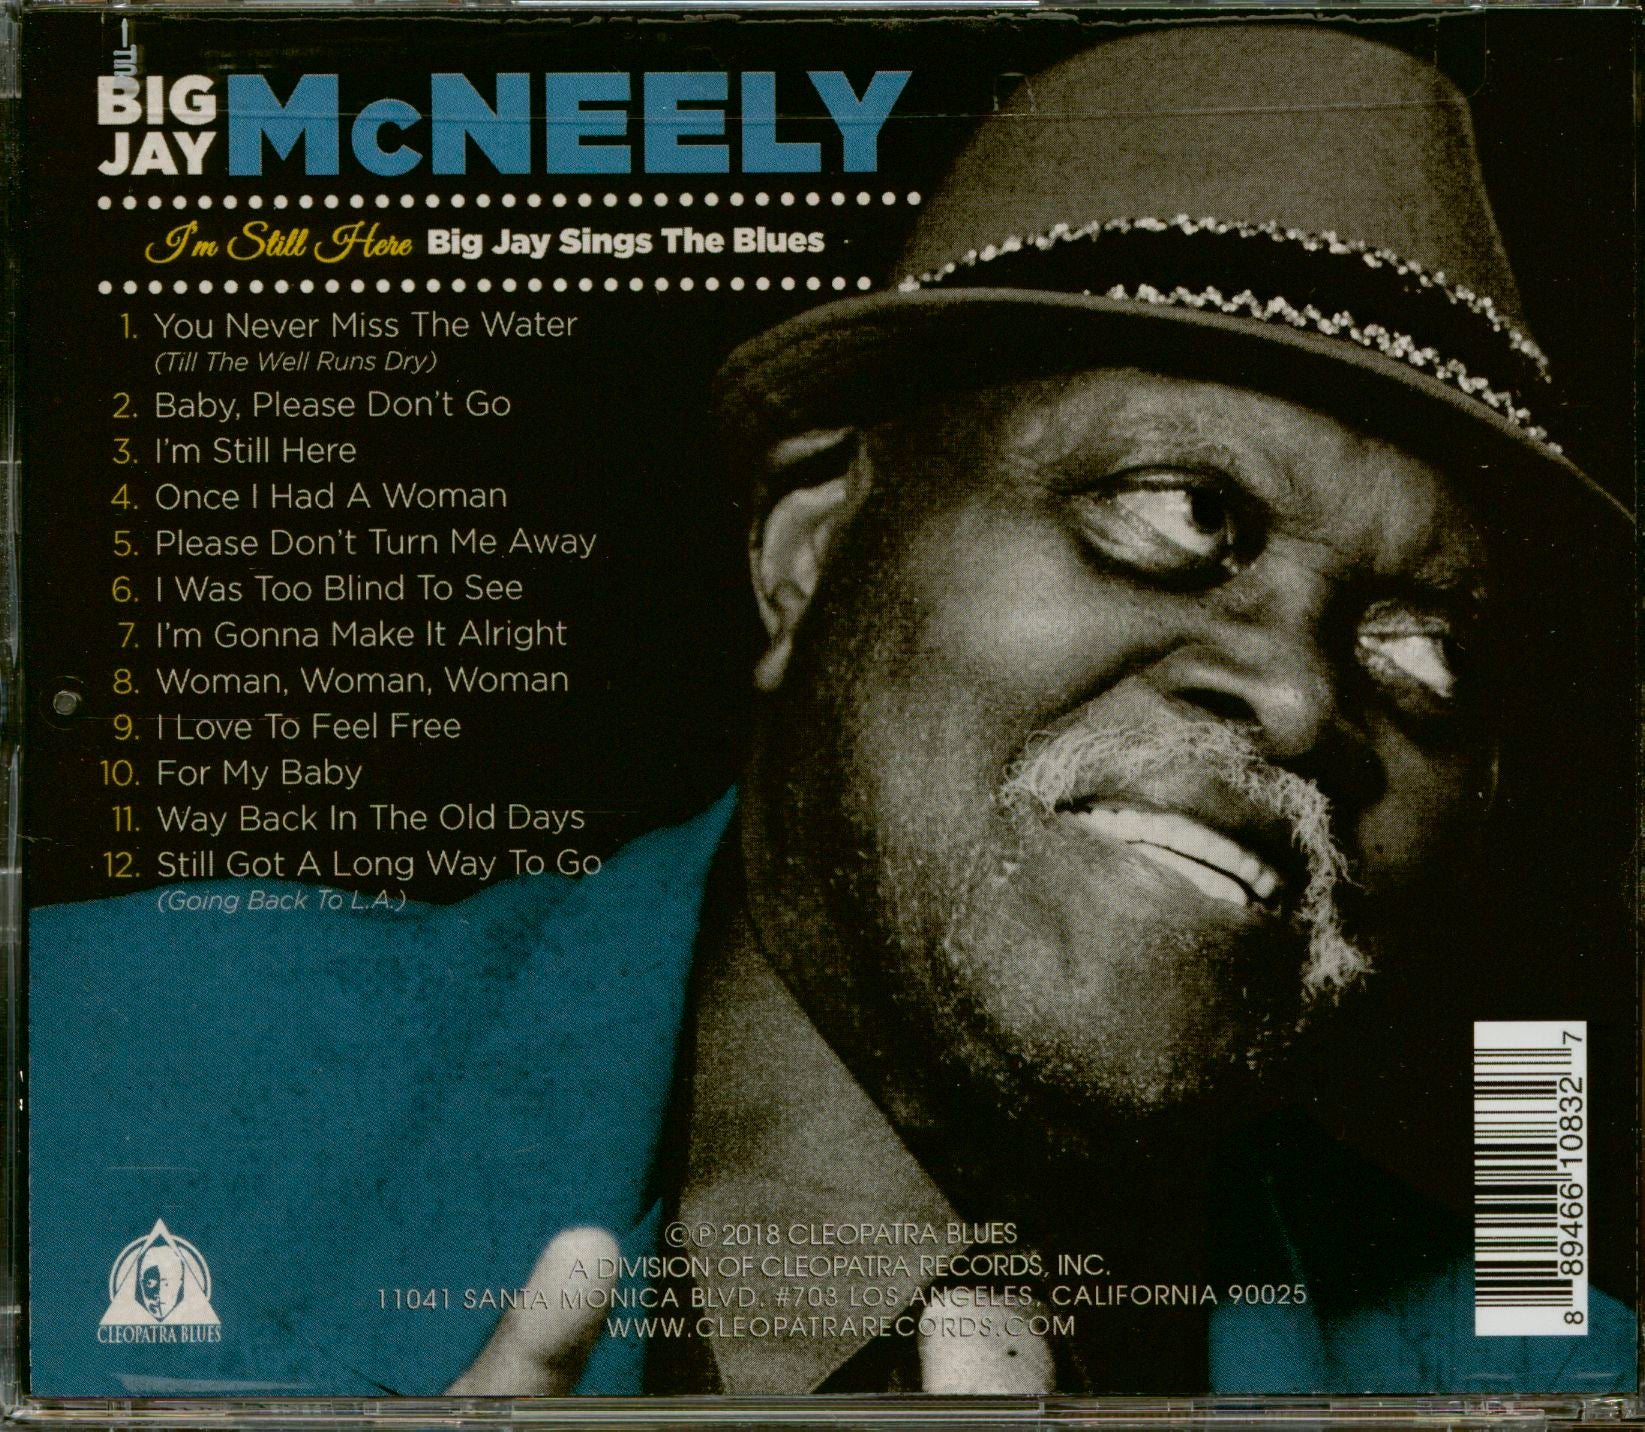 Big Jay McNeely - I'm Still Here